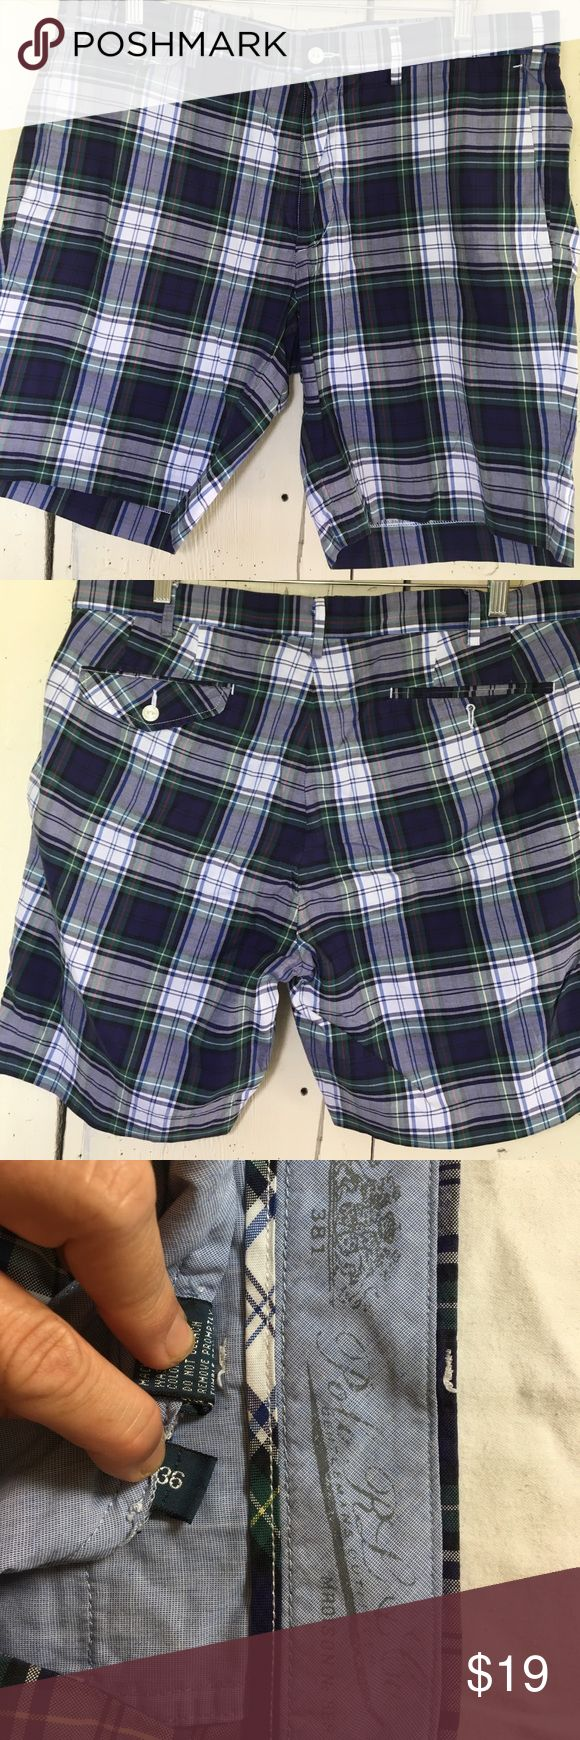 "Polo Ralph Lauren blue plaid men's shorts Polo Ralph Lauren blue plaid men's shorts size 36"" length 19"". EUC Polo by Ralph Lauren Shorts Flat Front"